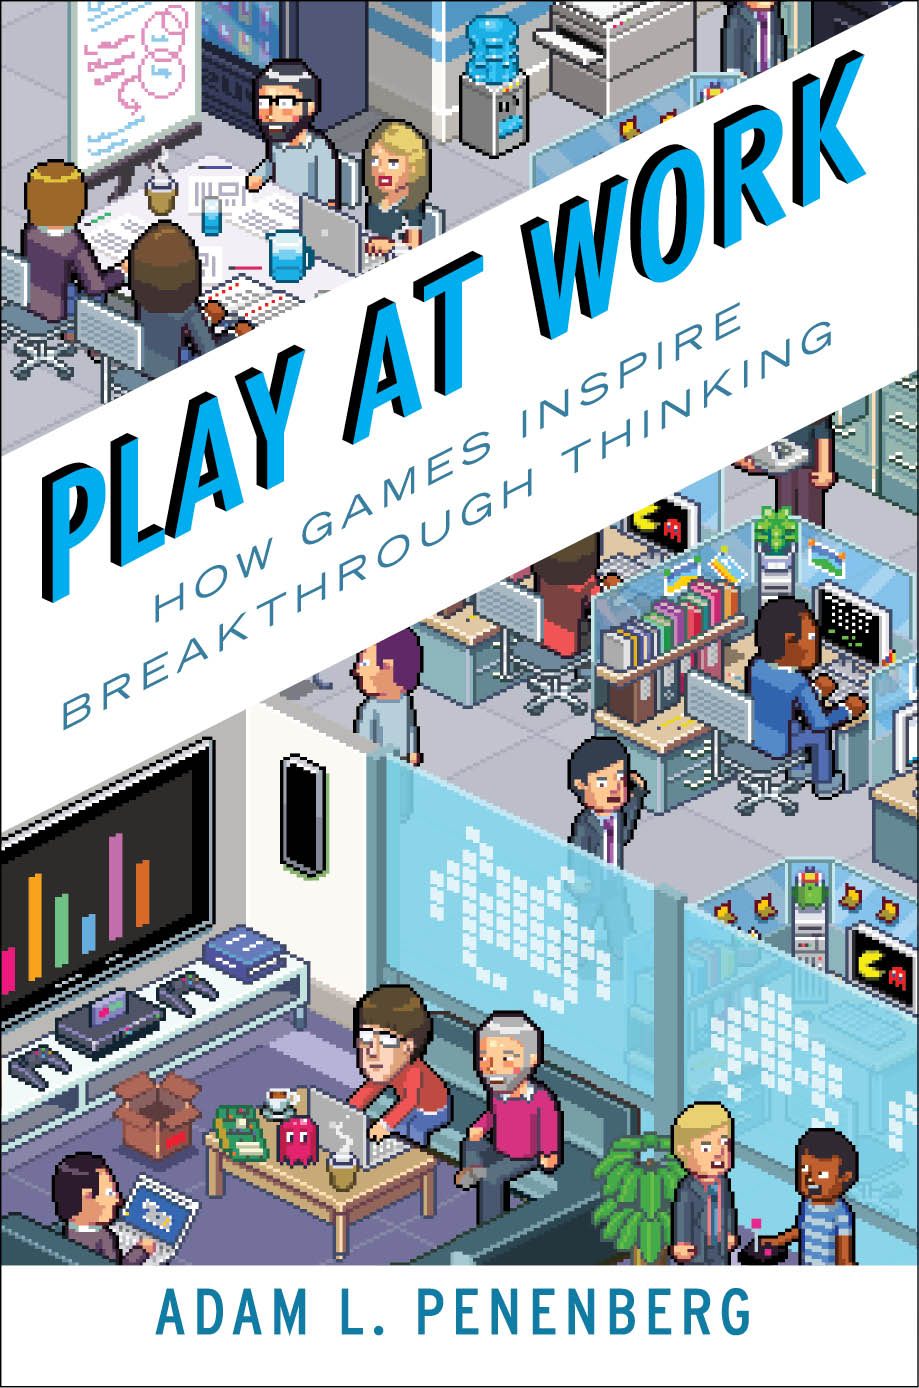 how to play the game at work